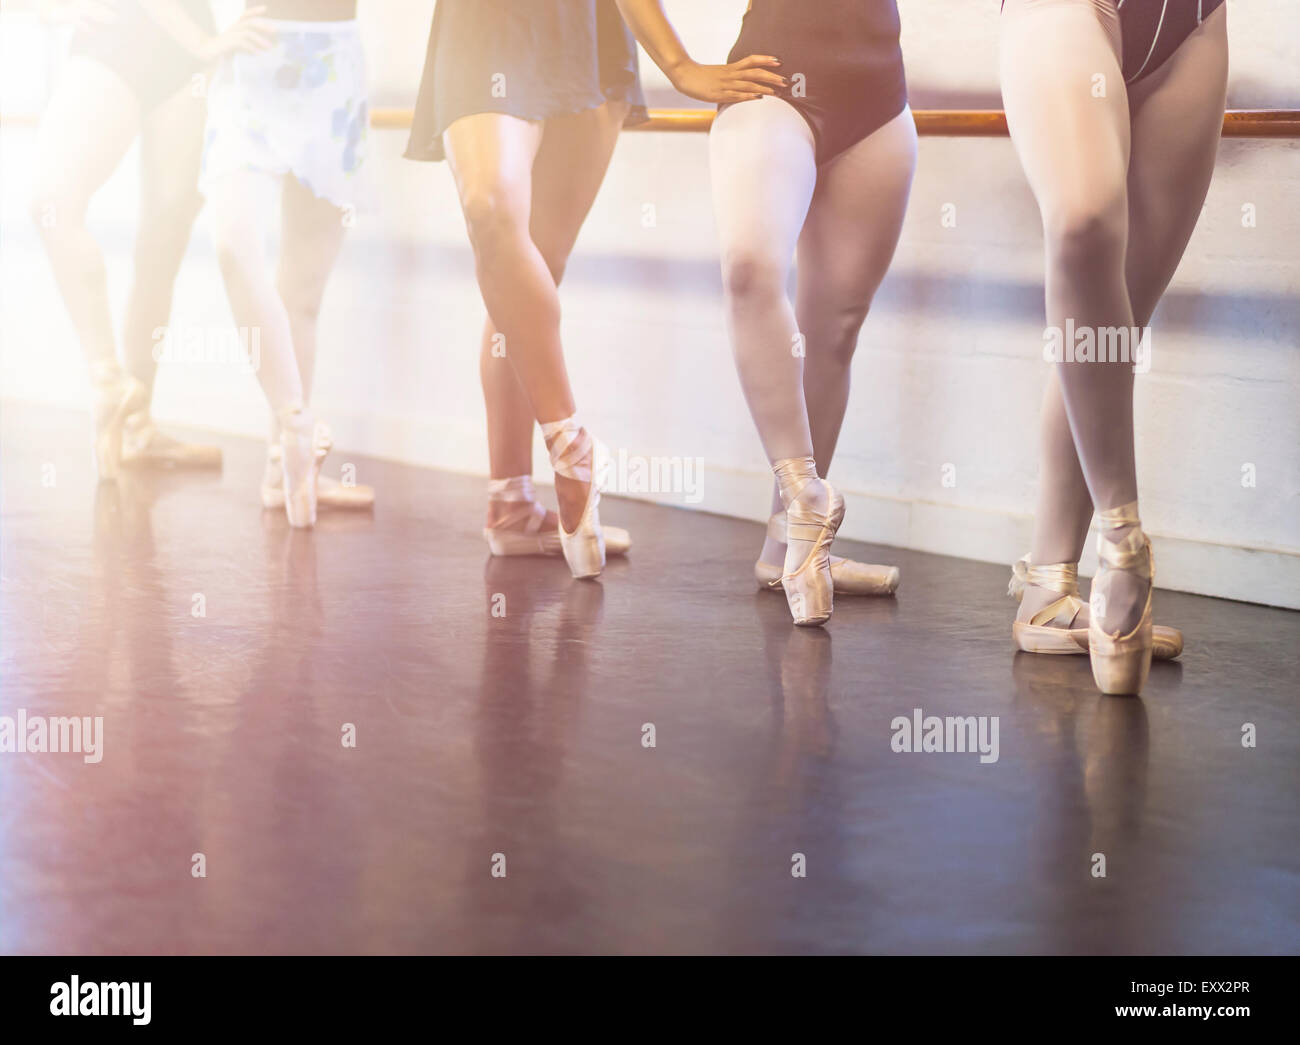 Young women dancing in dance studio - Stock Image